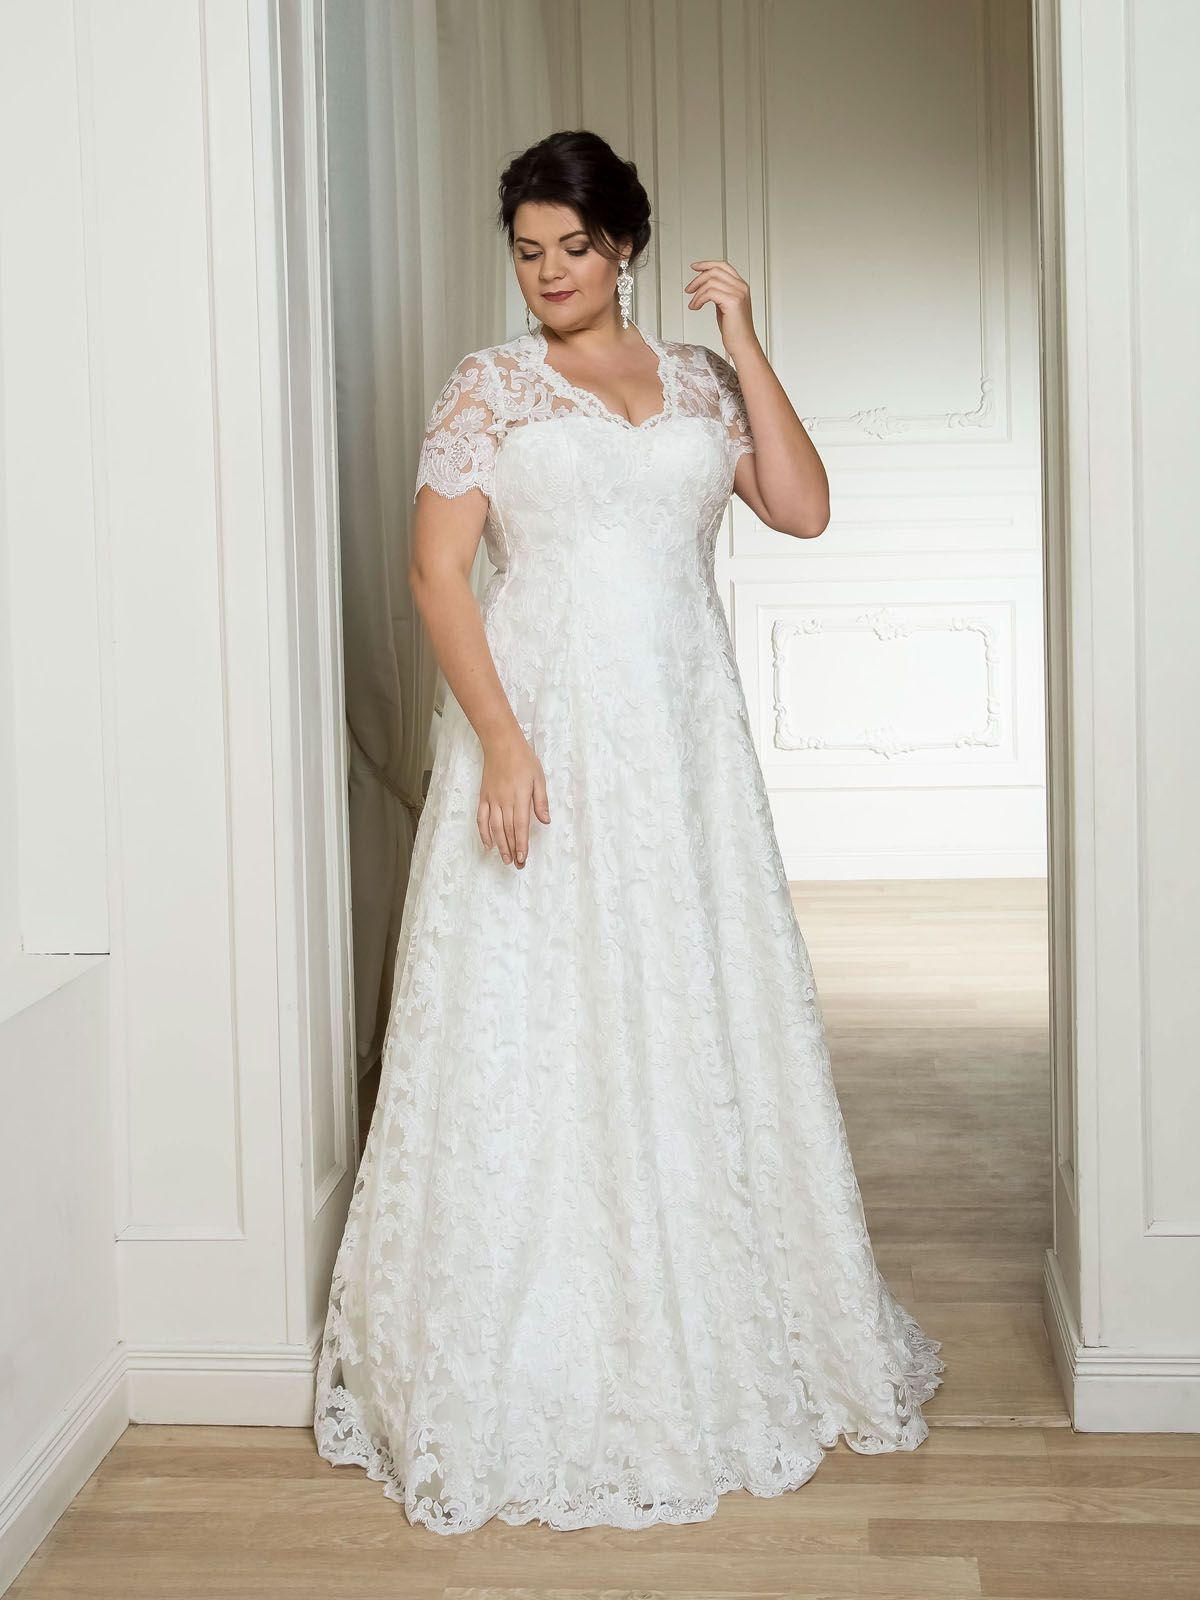 Robe mariage femme 50 ans